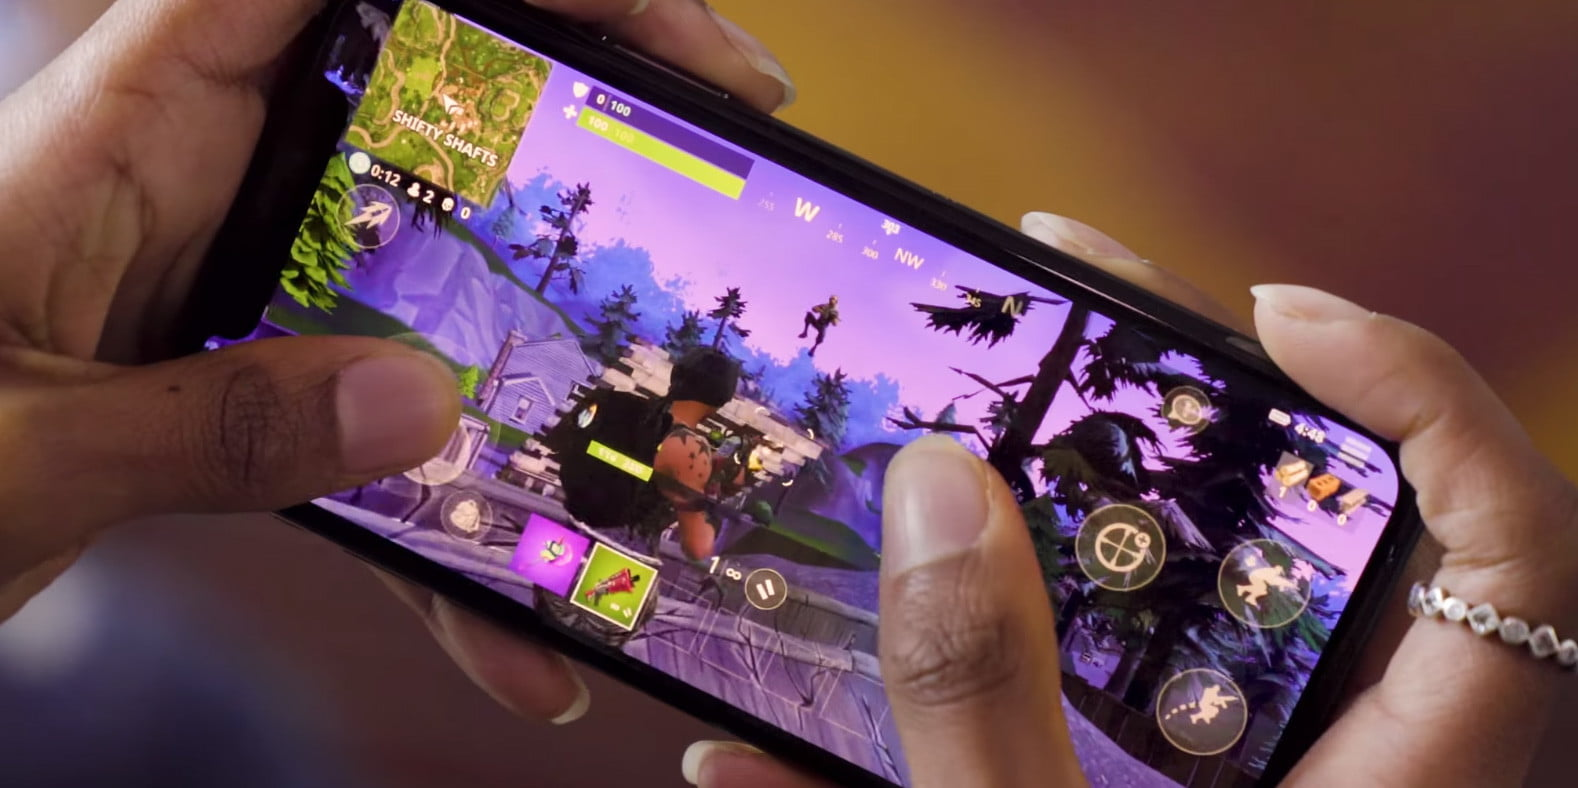 The Crisis Has Ended: 'Fortnite' Servers Are Back Online